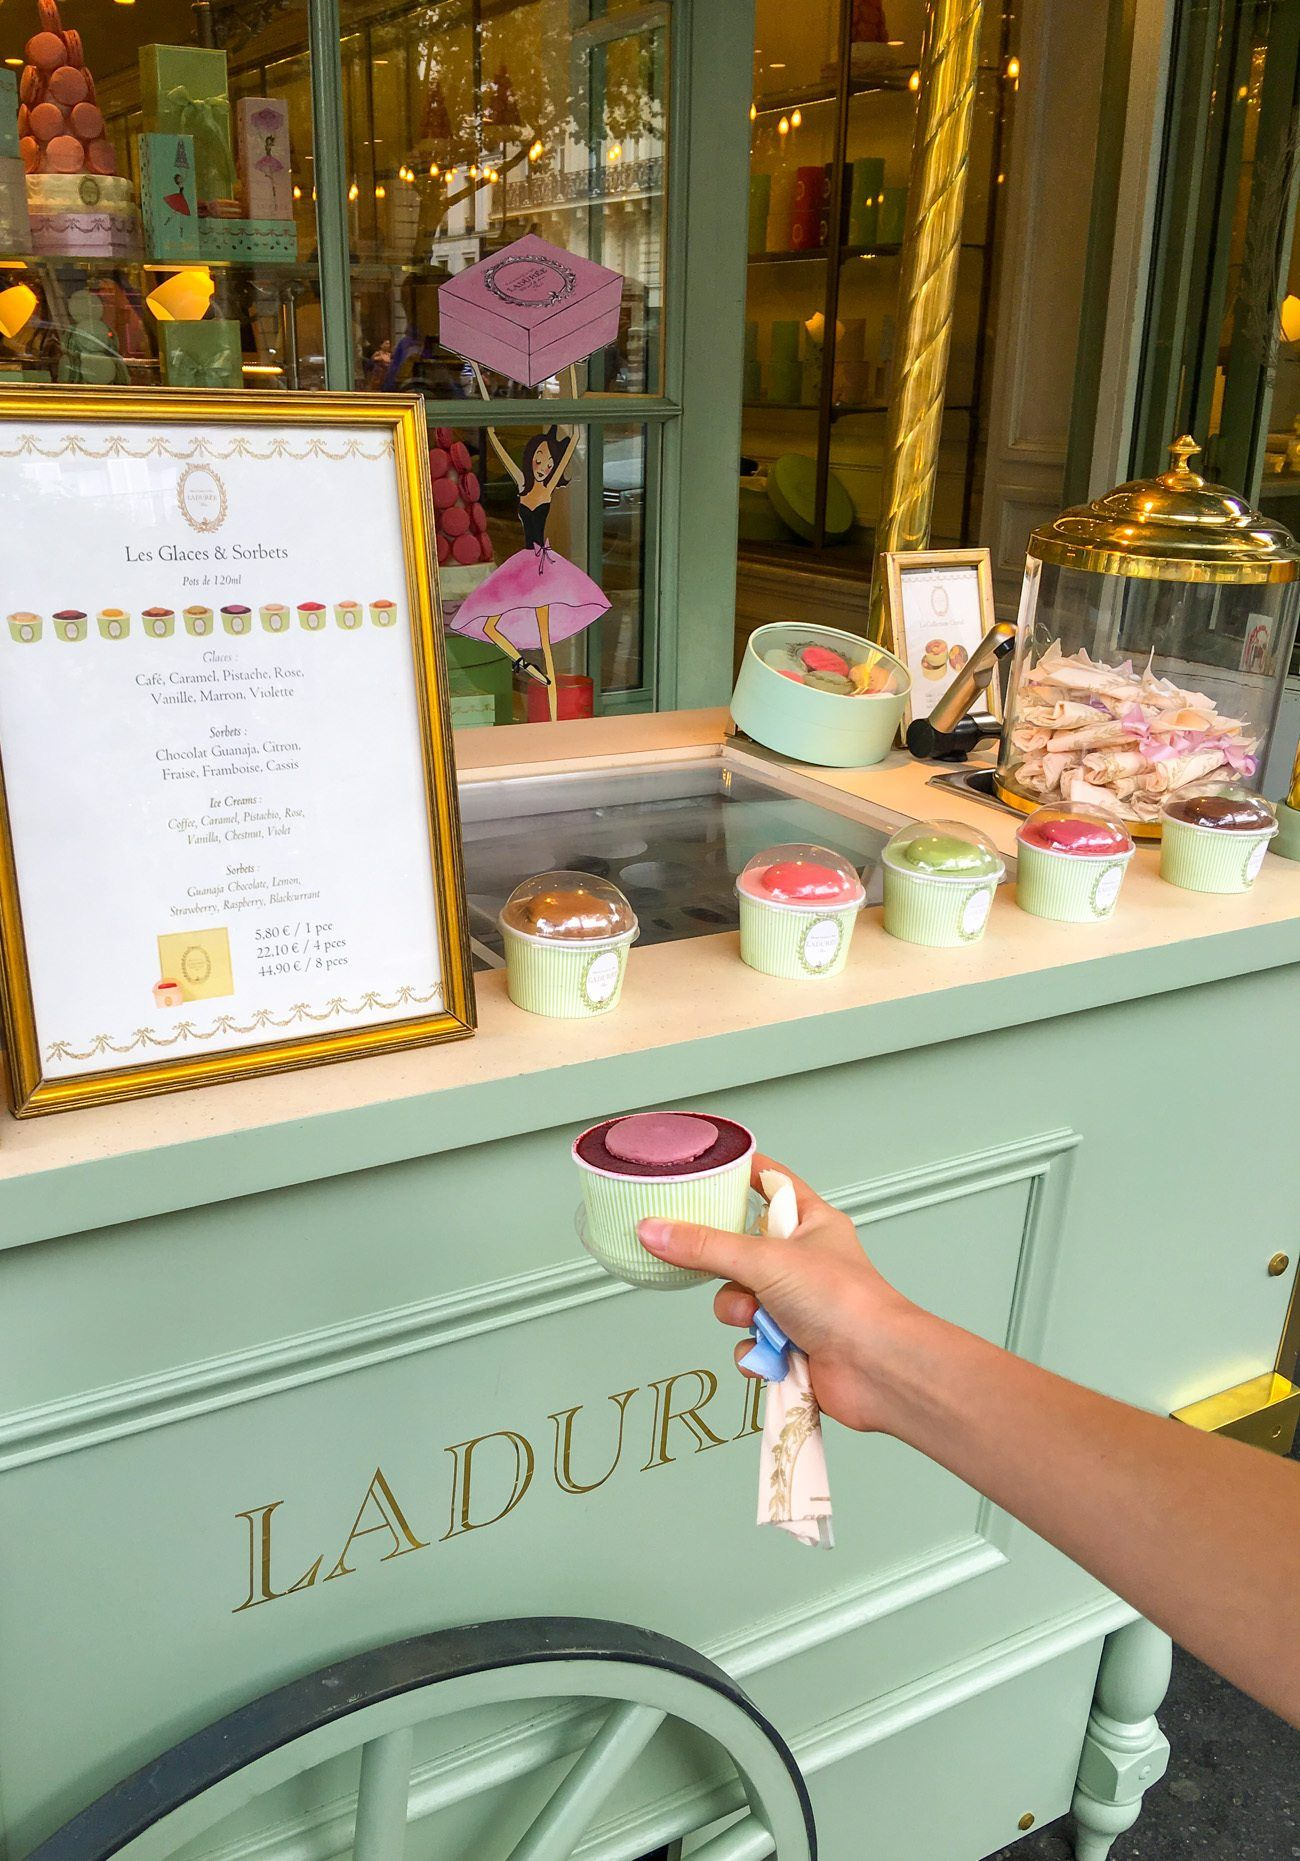 Reasons to Dine at this Ladurée Tea Salon in Paris #favoriteplaces